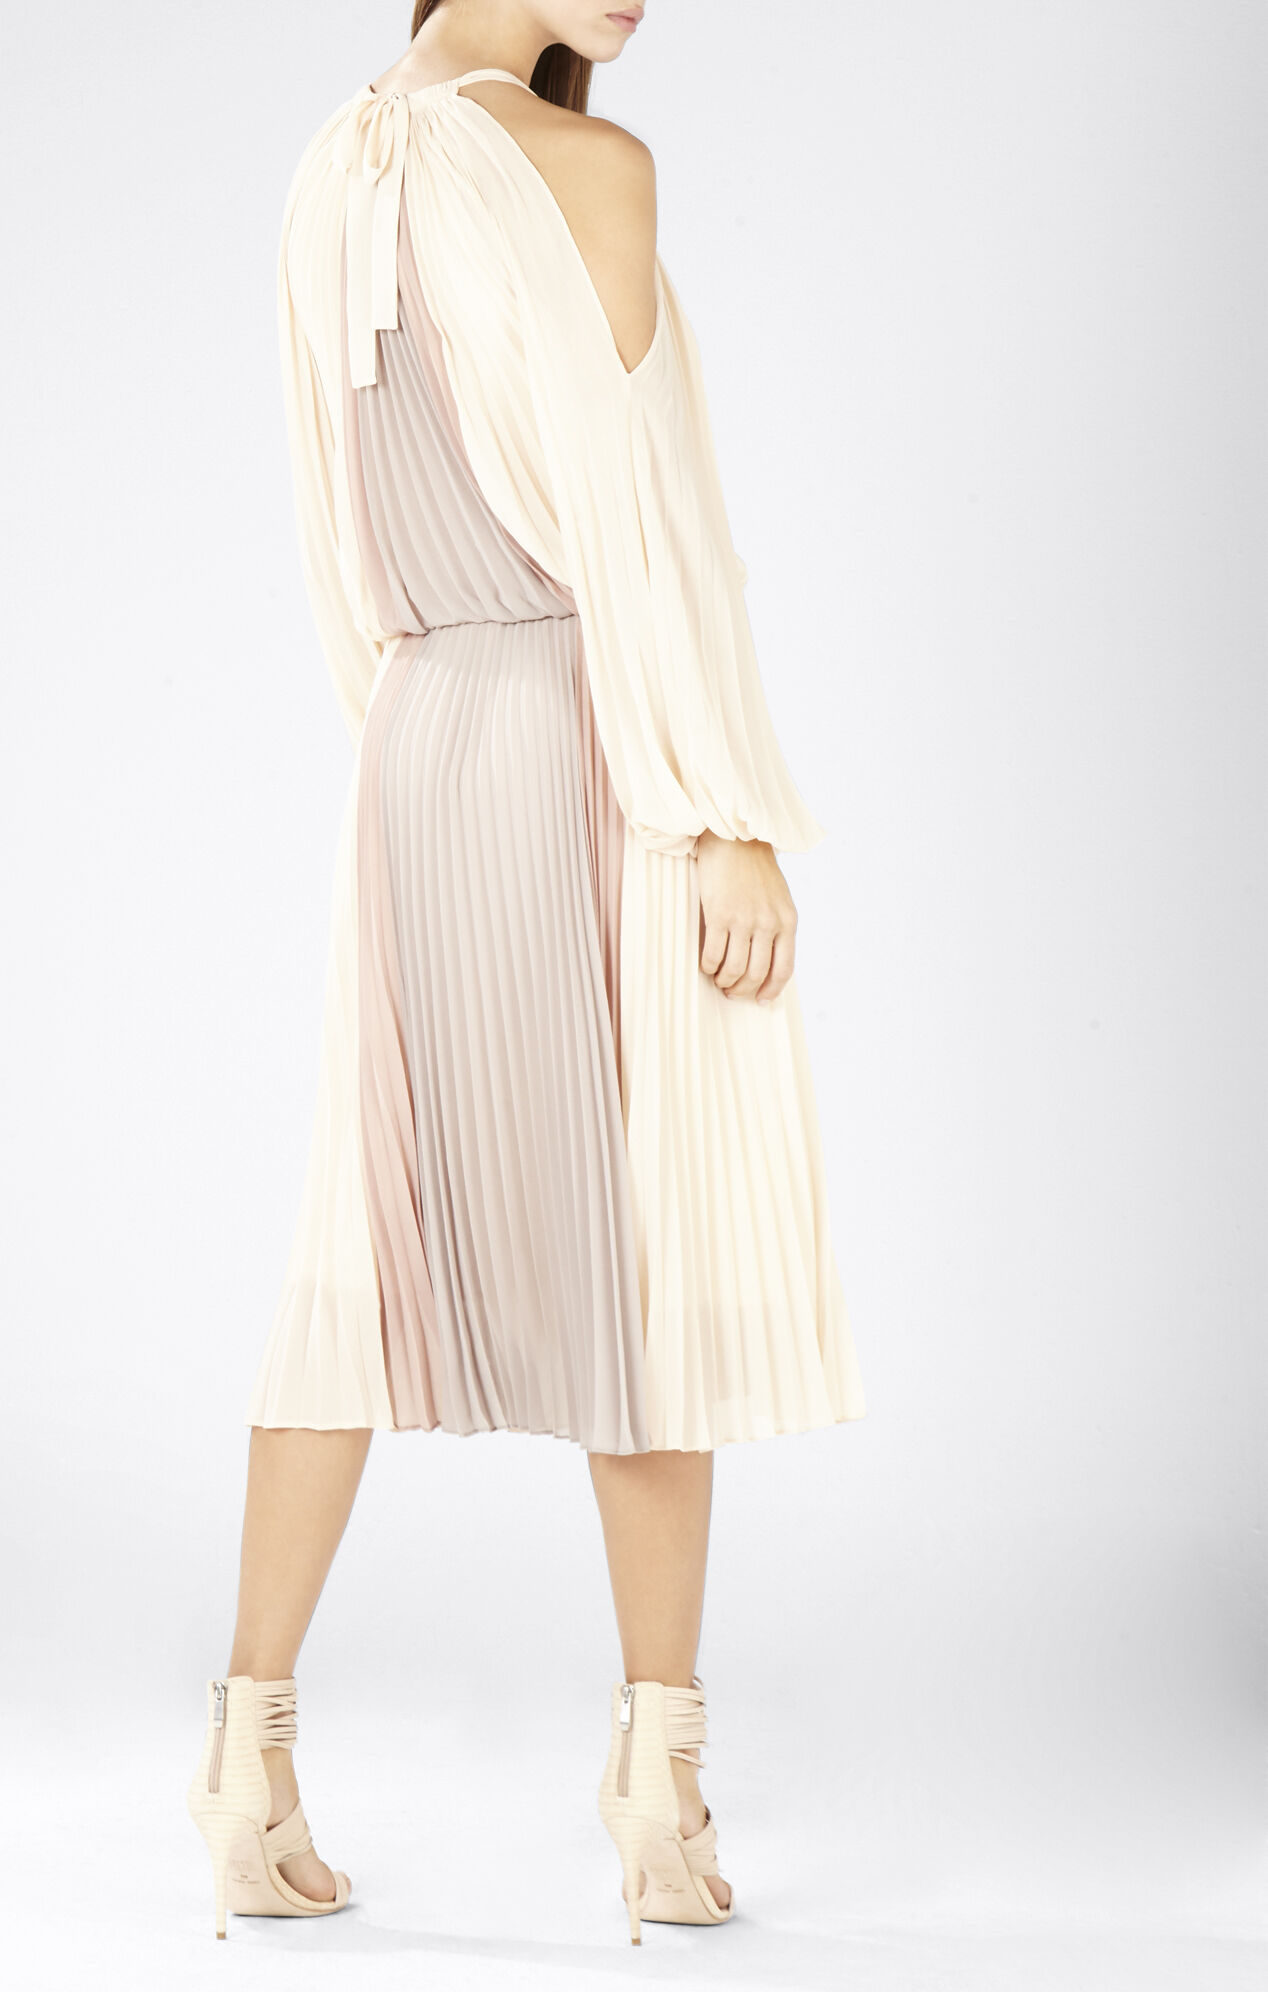 Camira Halter-Neck Pleated Color-Blocked Dress